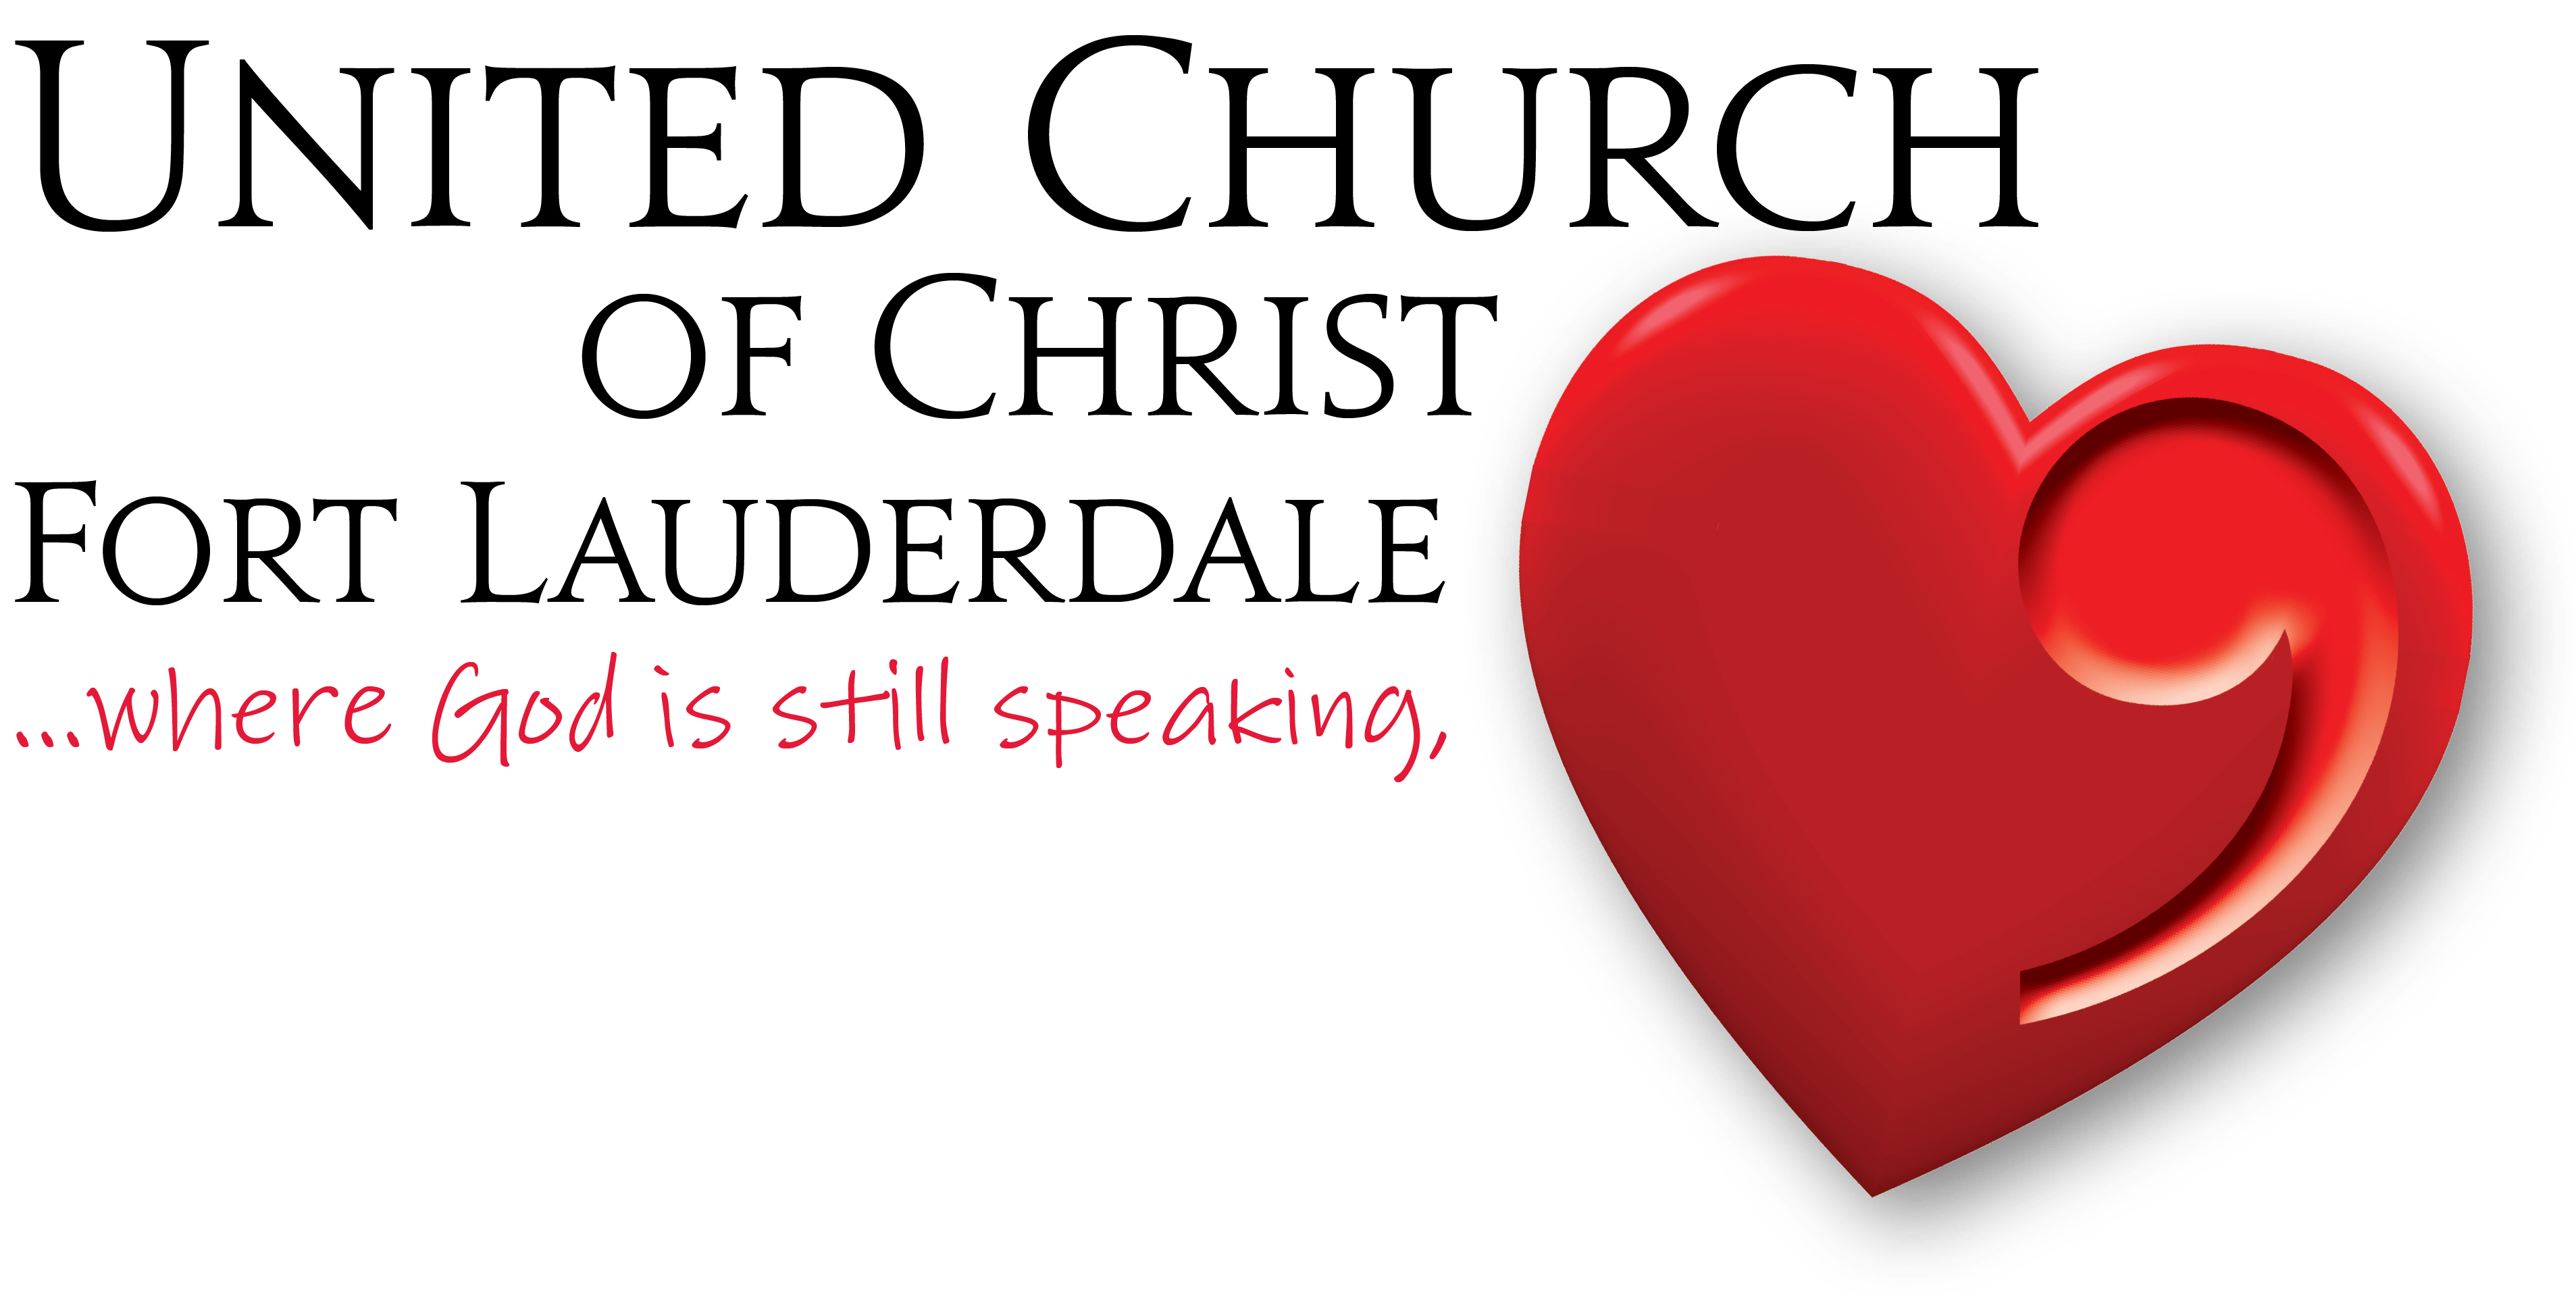 United Church of Christ Fort Lauderdale Worship December 20, 2020